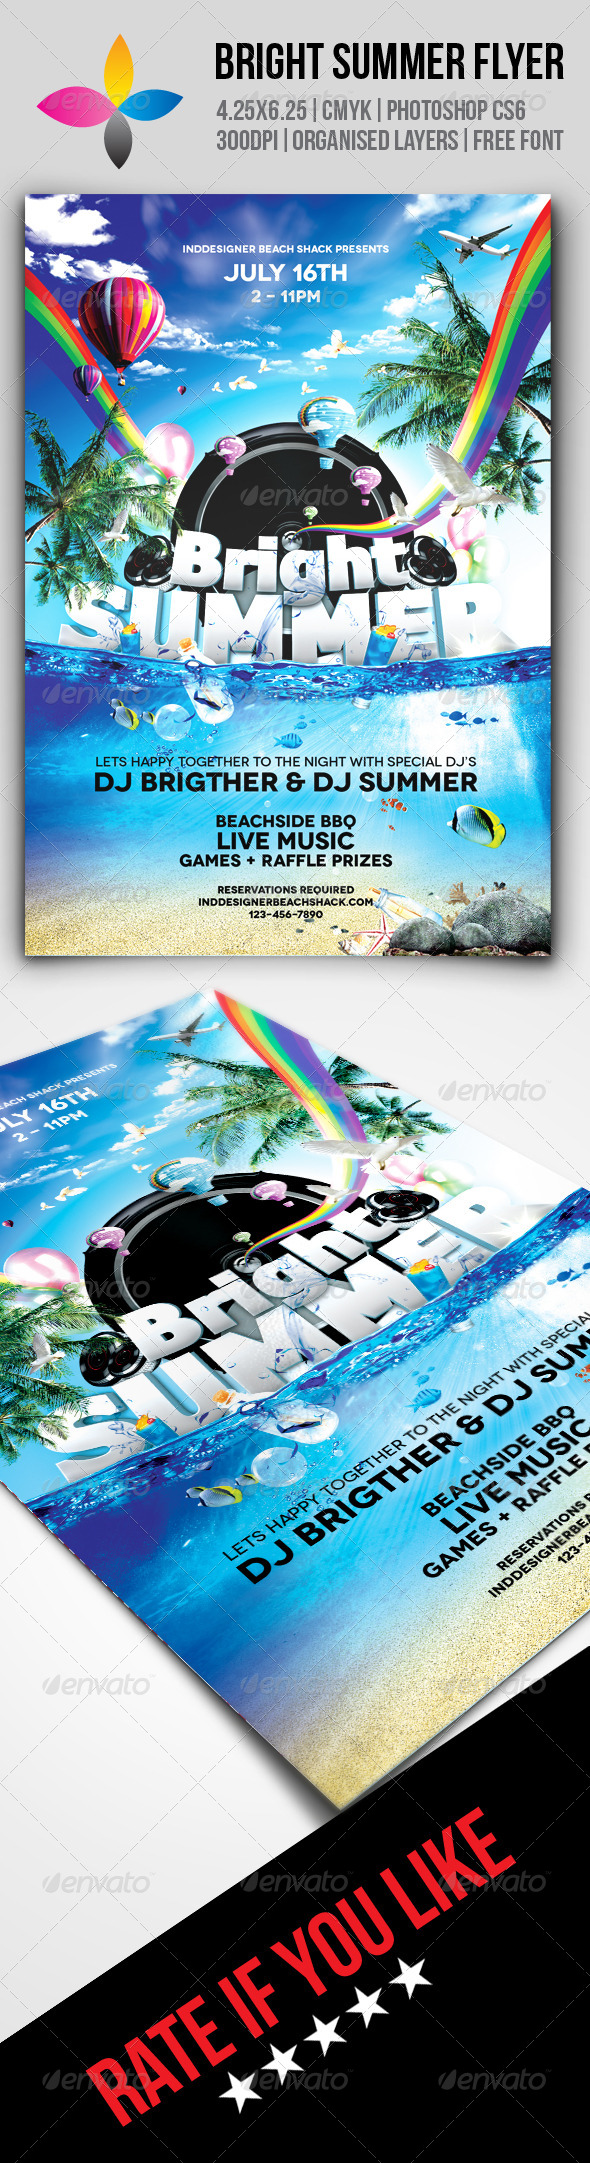 GraphicRiver Bright Summer Flyer 7966053